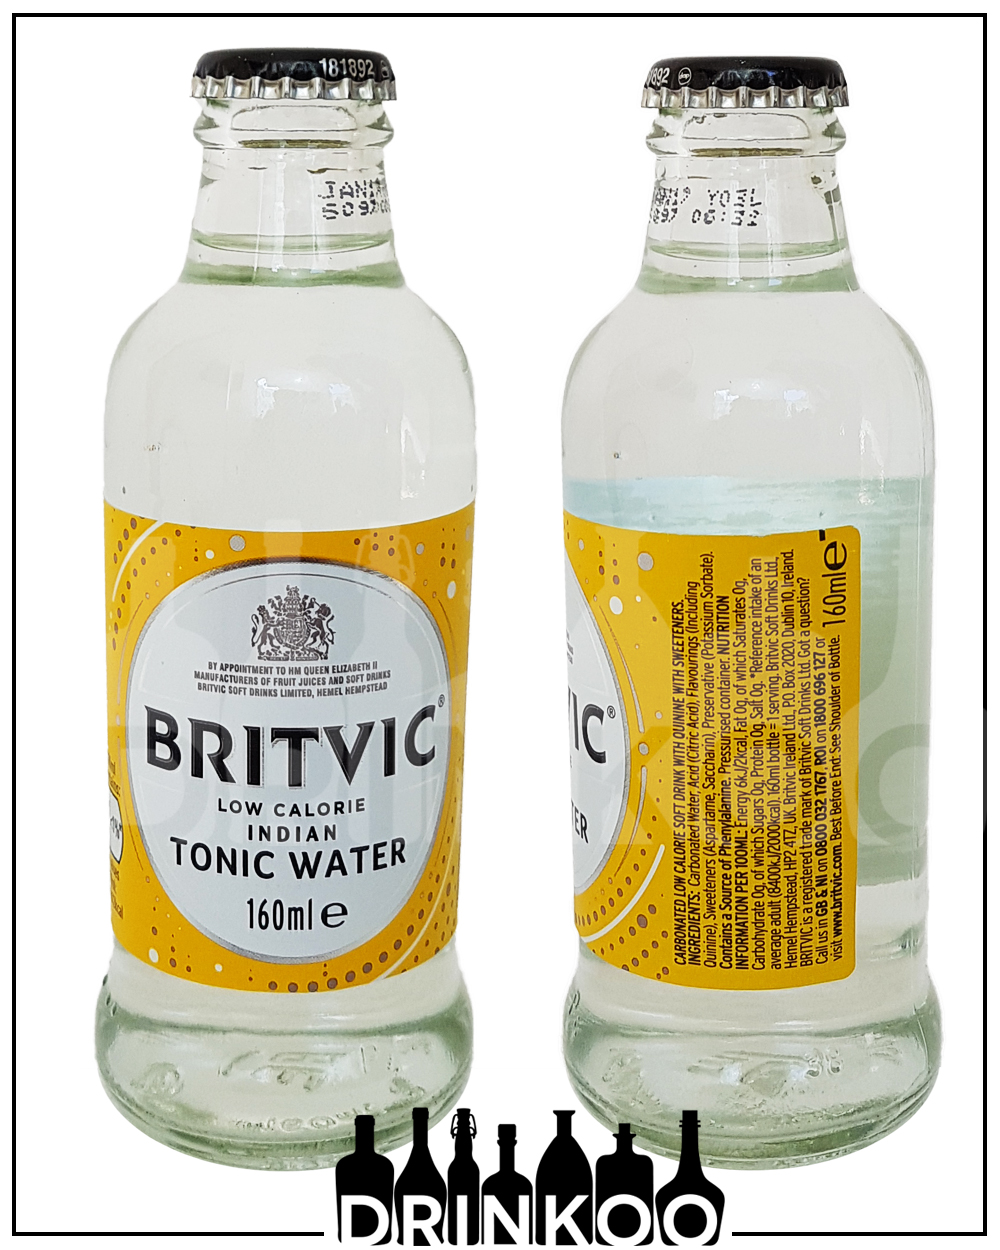 Britvic Low Calorie Indian Tonic Water